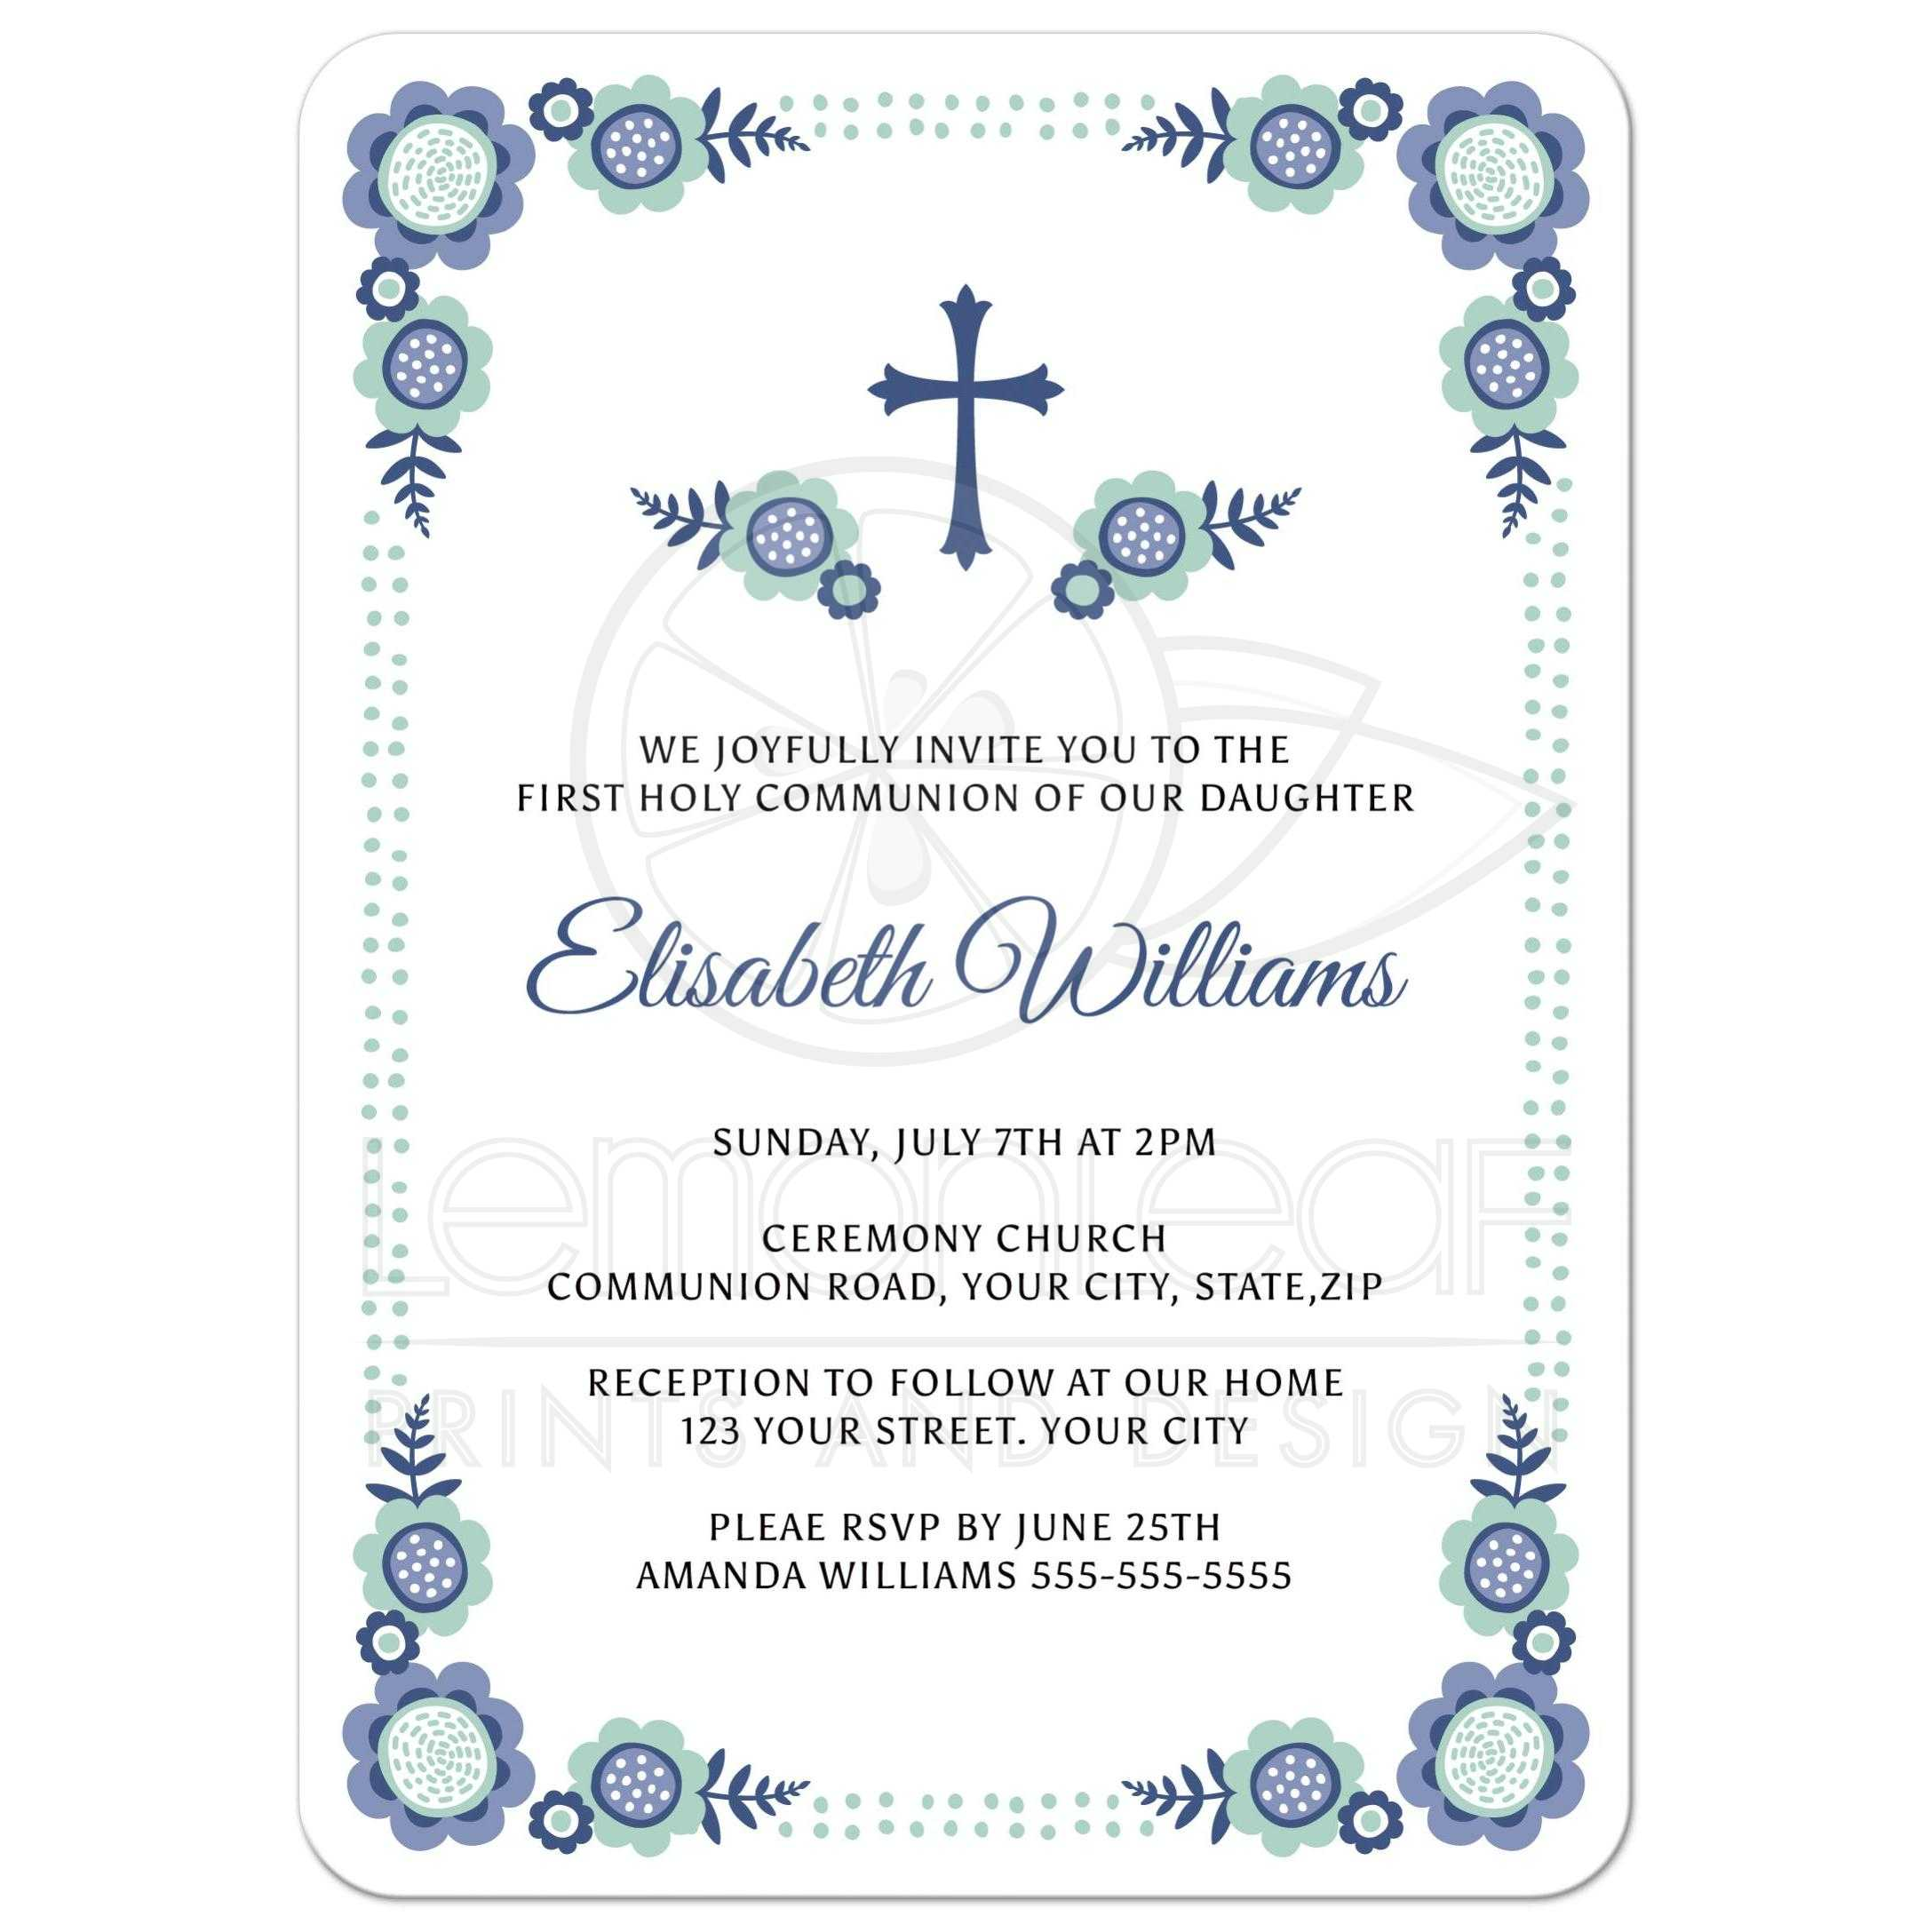 Reception Following Ceremony Wording: Blue Bloom First Holy Communion Invitation With Cute